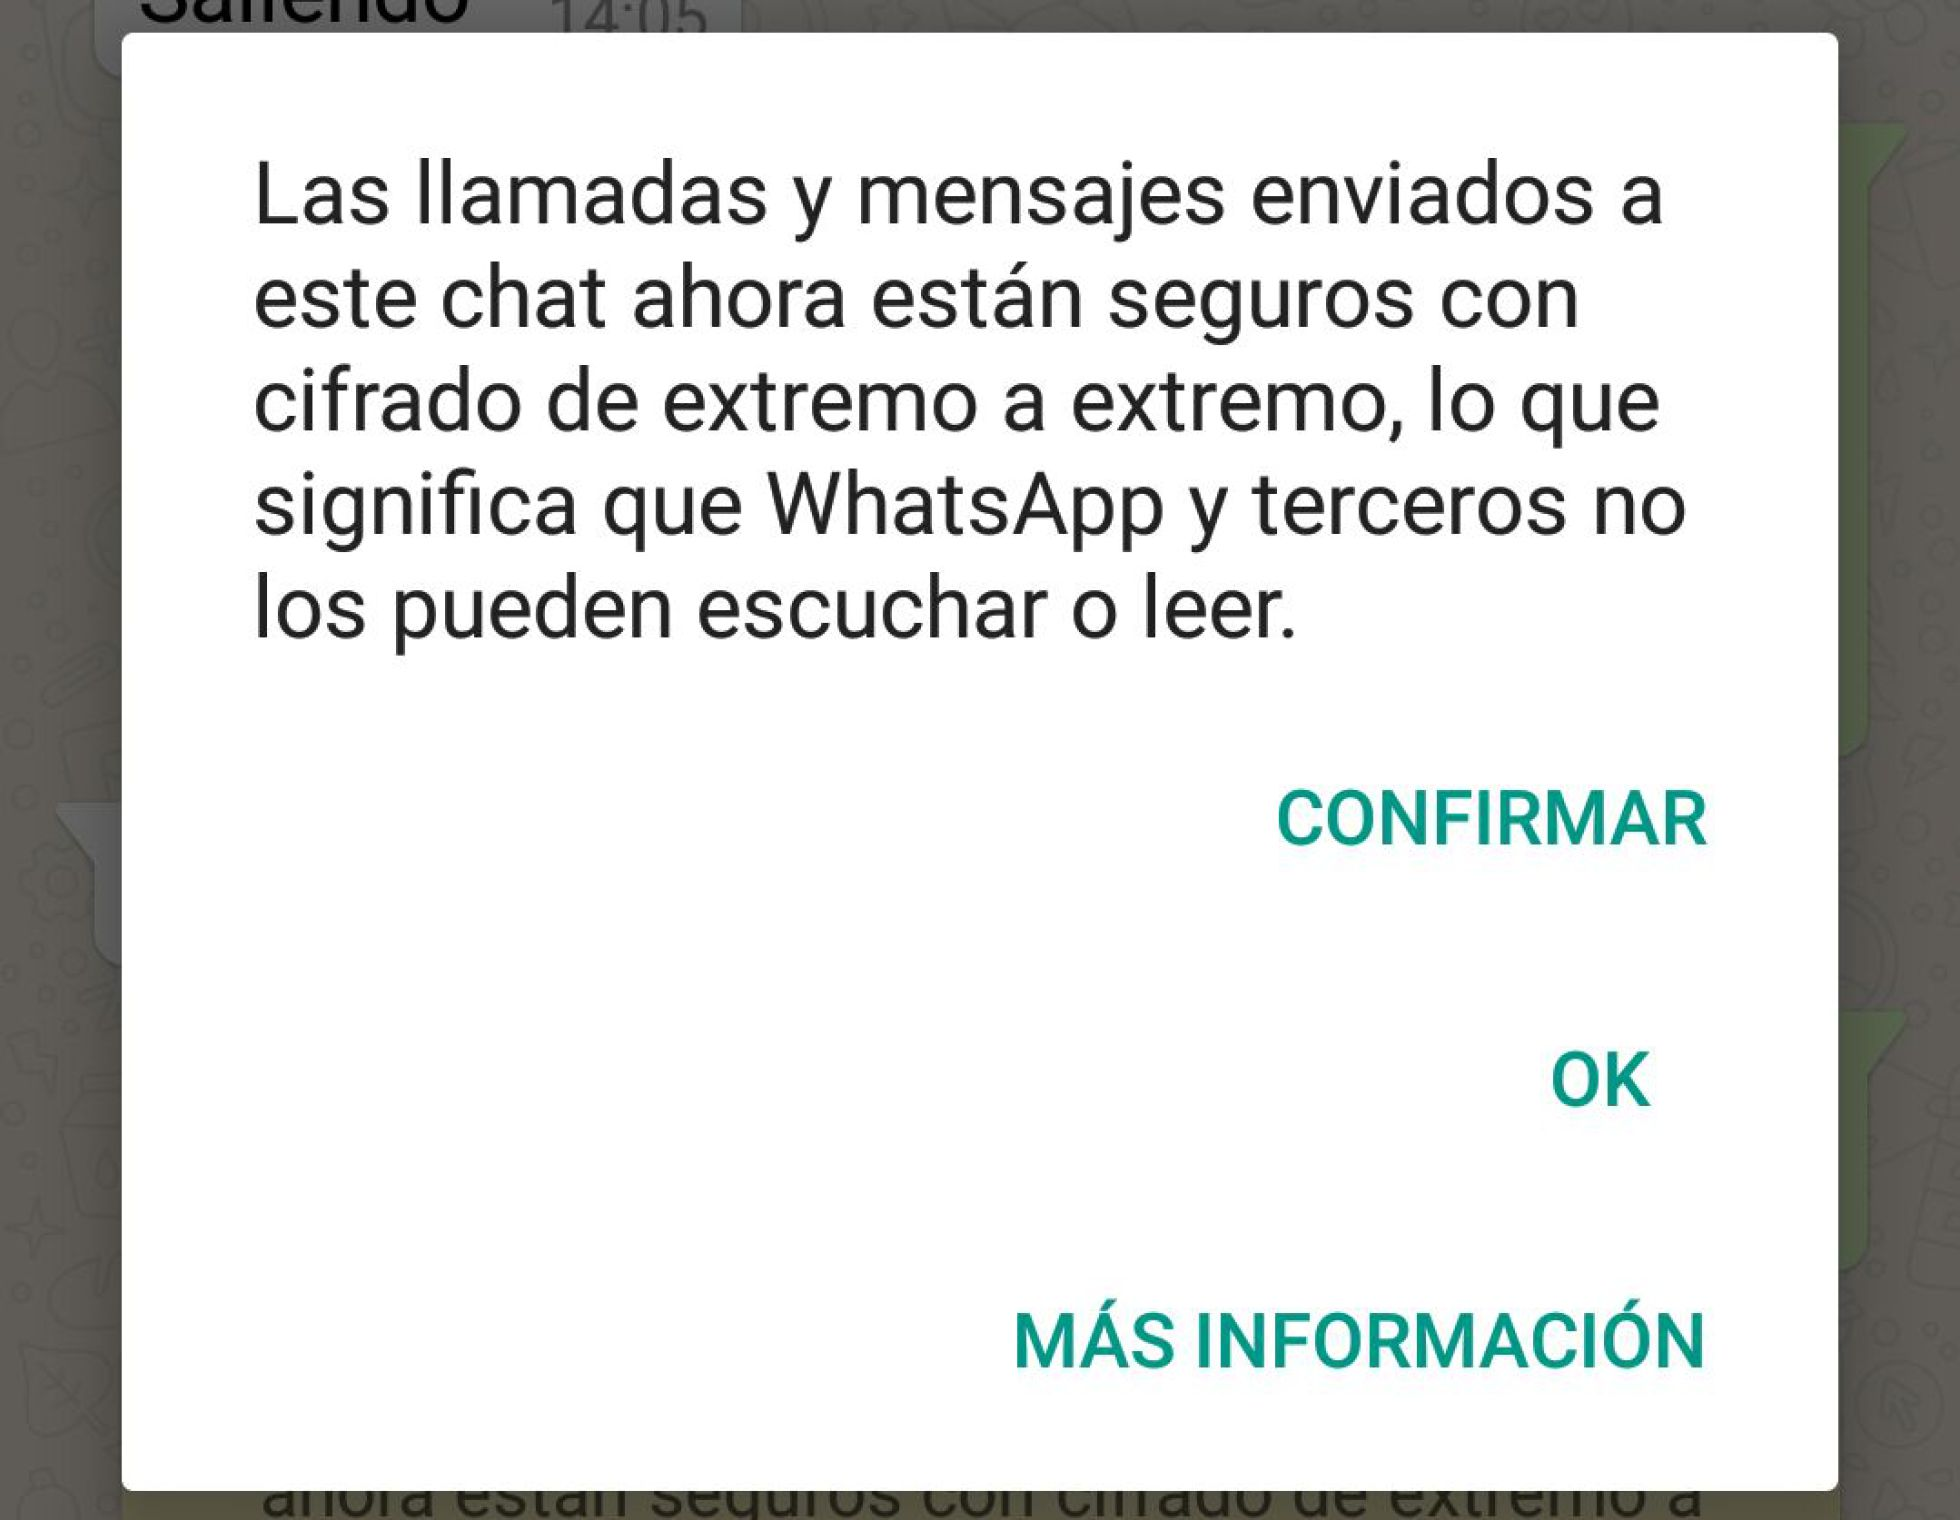 WhatsApp cifrado